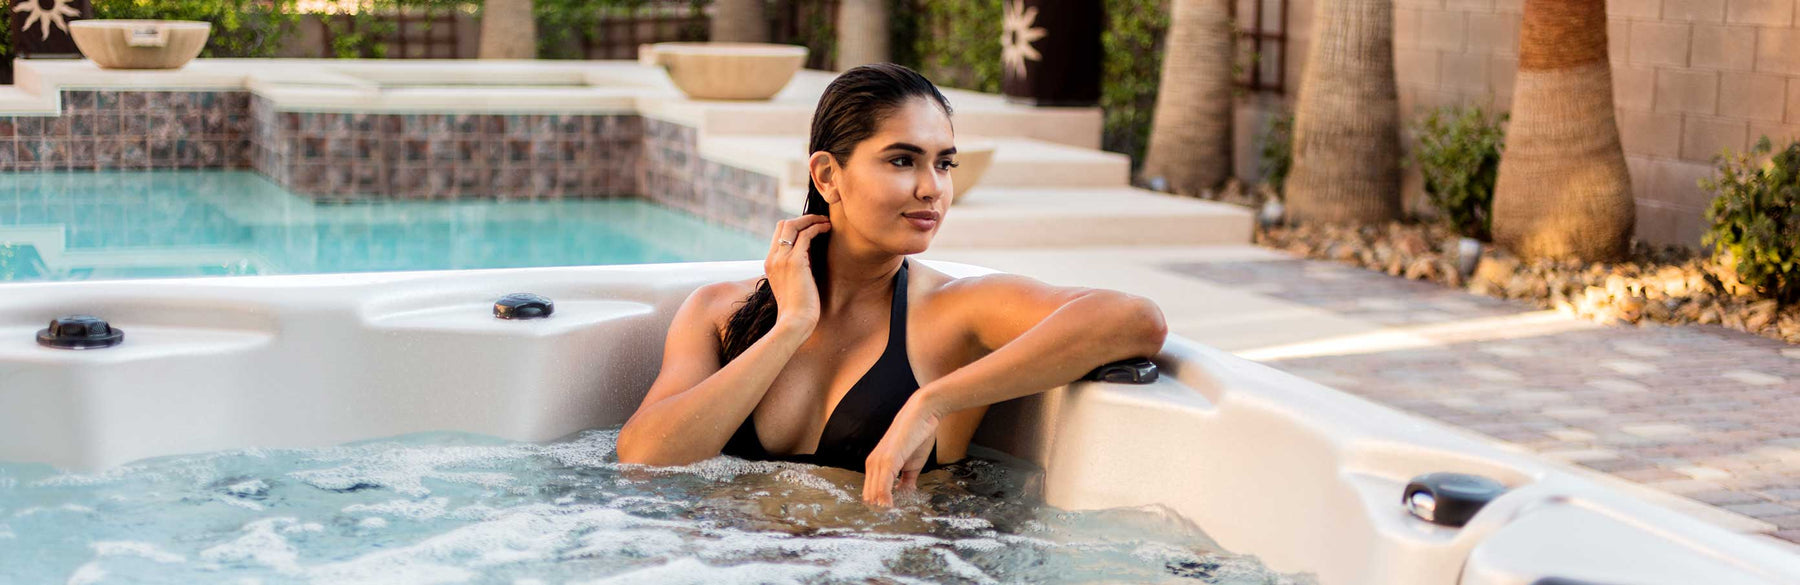 How To Do Fall Hot Tub Maintenance In 5 Easy Steps